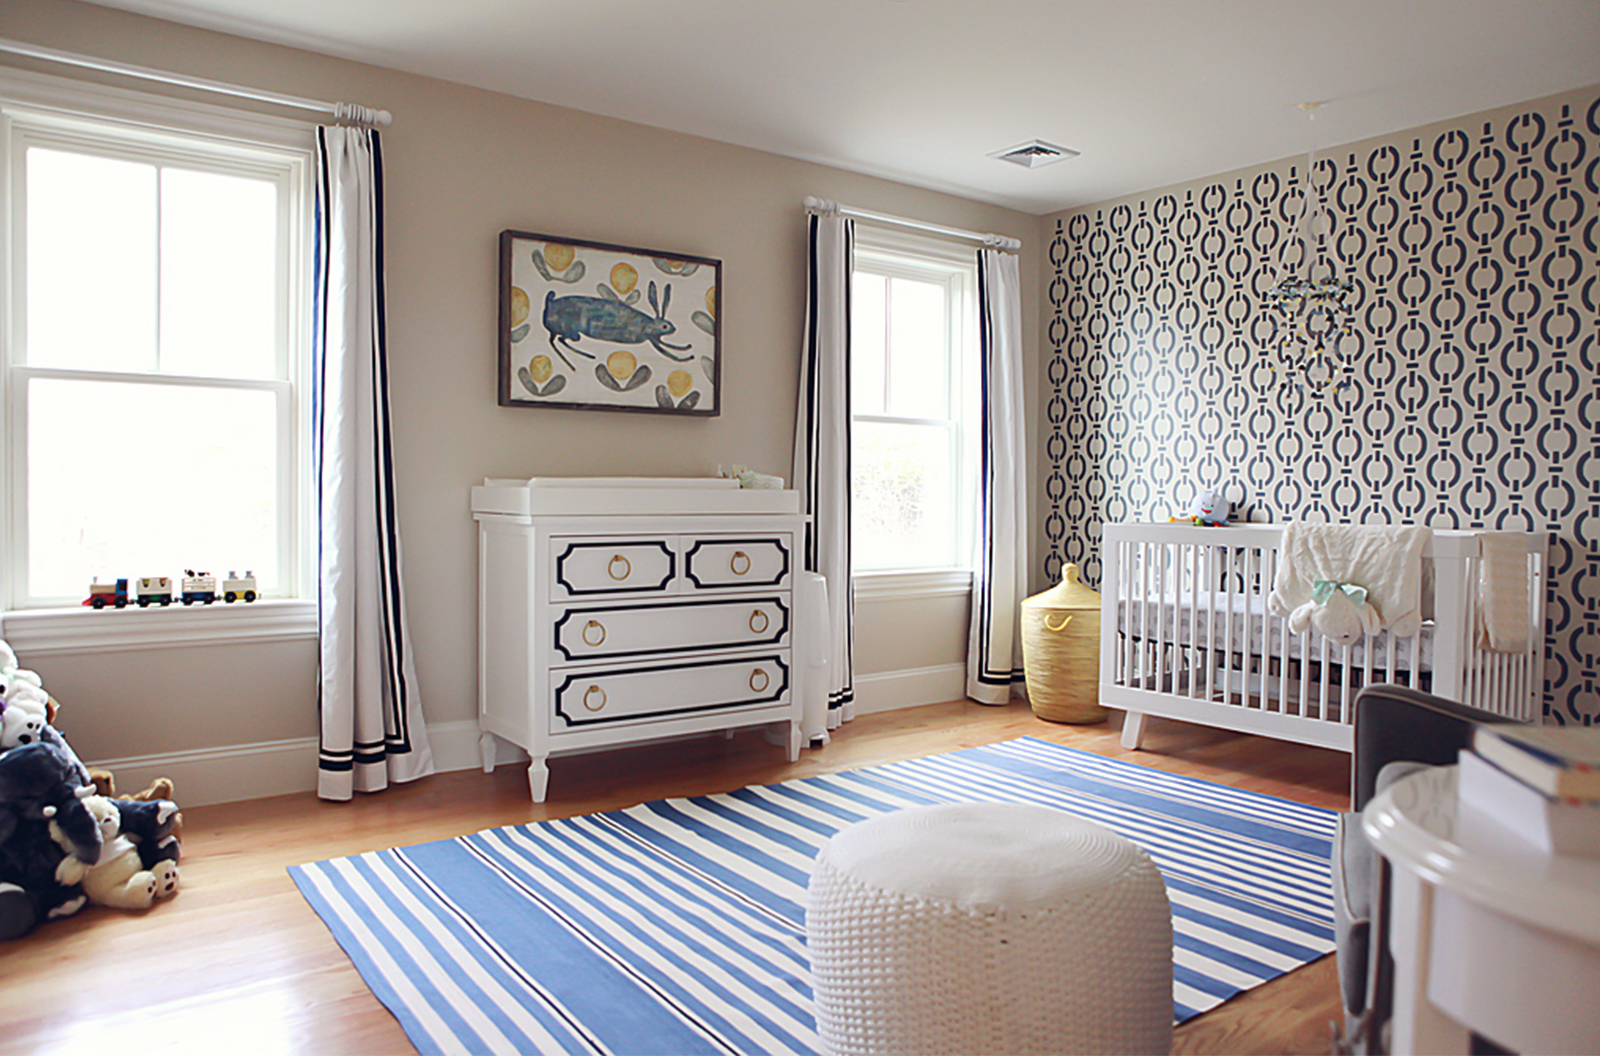 Mandarina Studio :: Boston nursery interior design contemporary bold color baby room